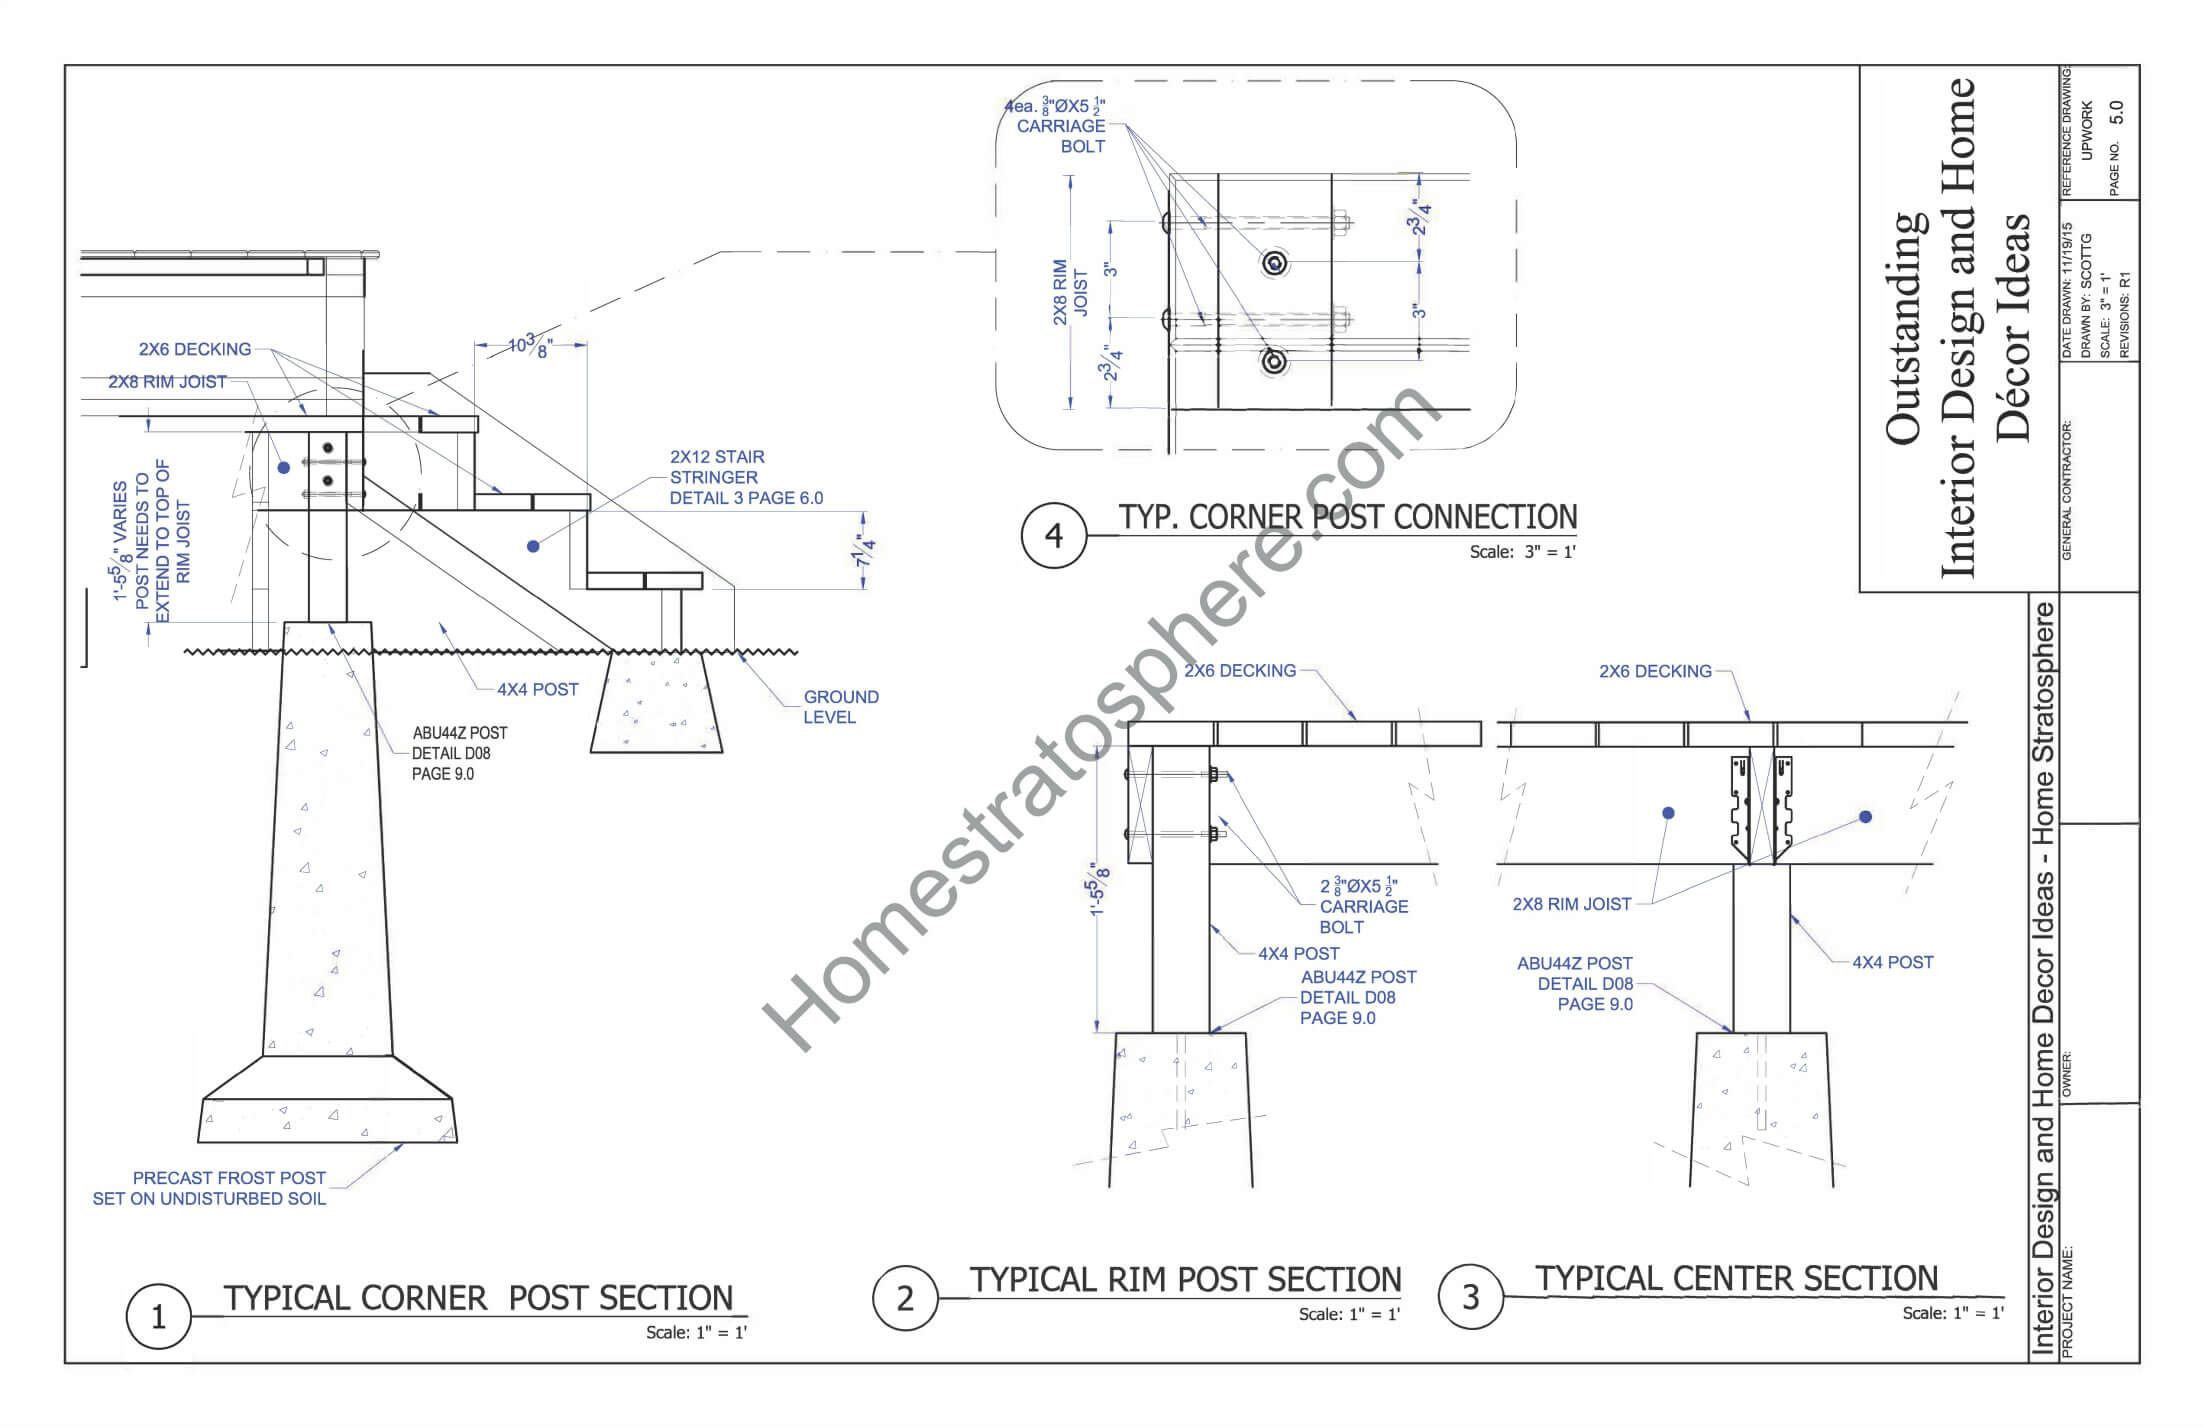 Deck Plan With Built In Benches For Seating And Storage In 2021 Deck Plans Free Deck Plans Deck Layout